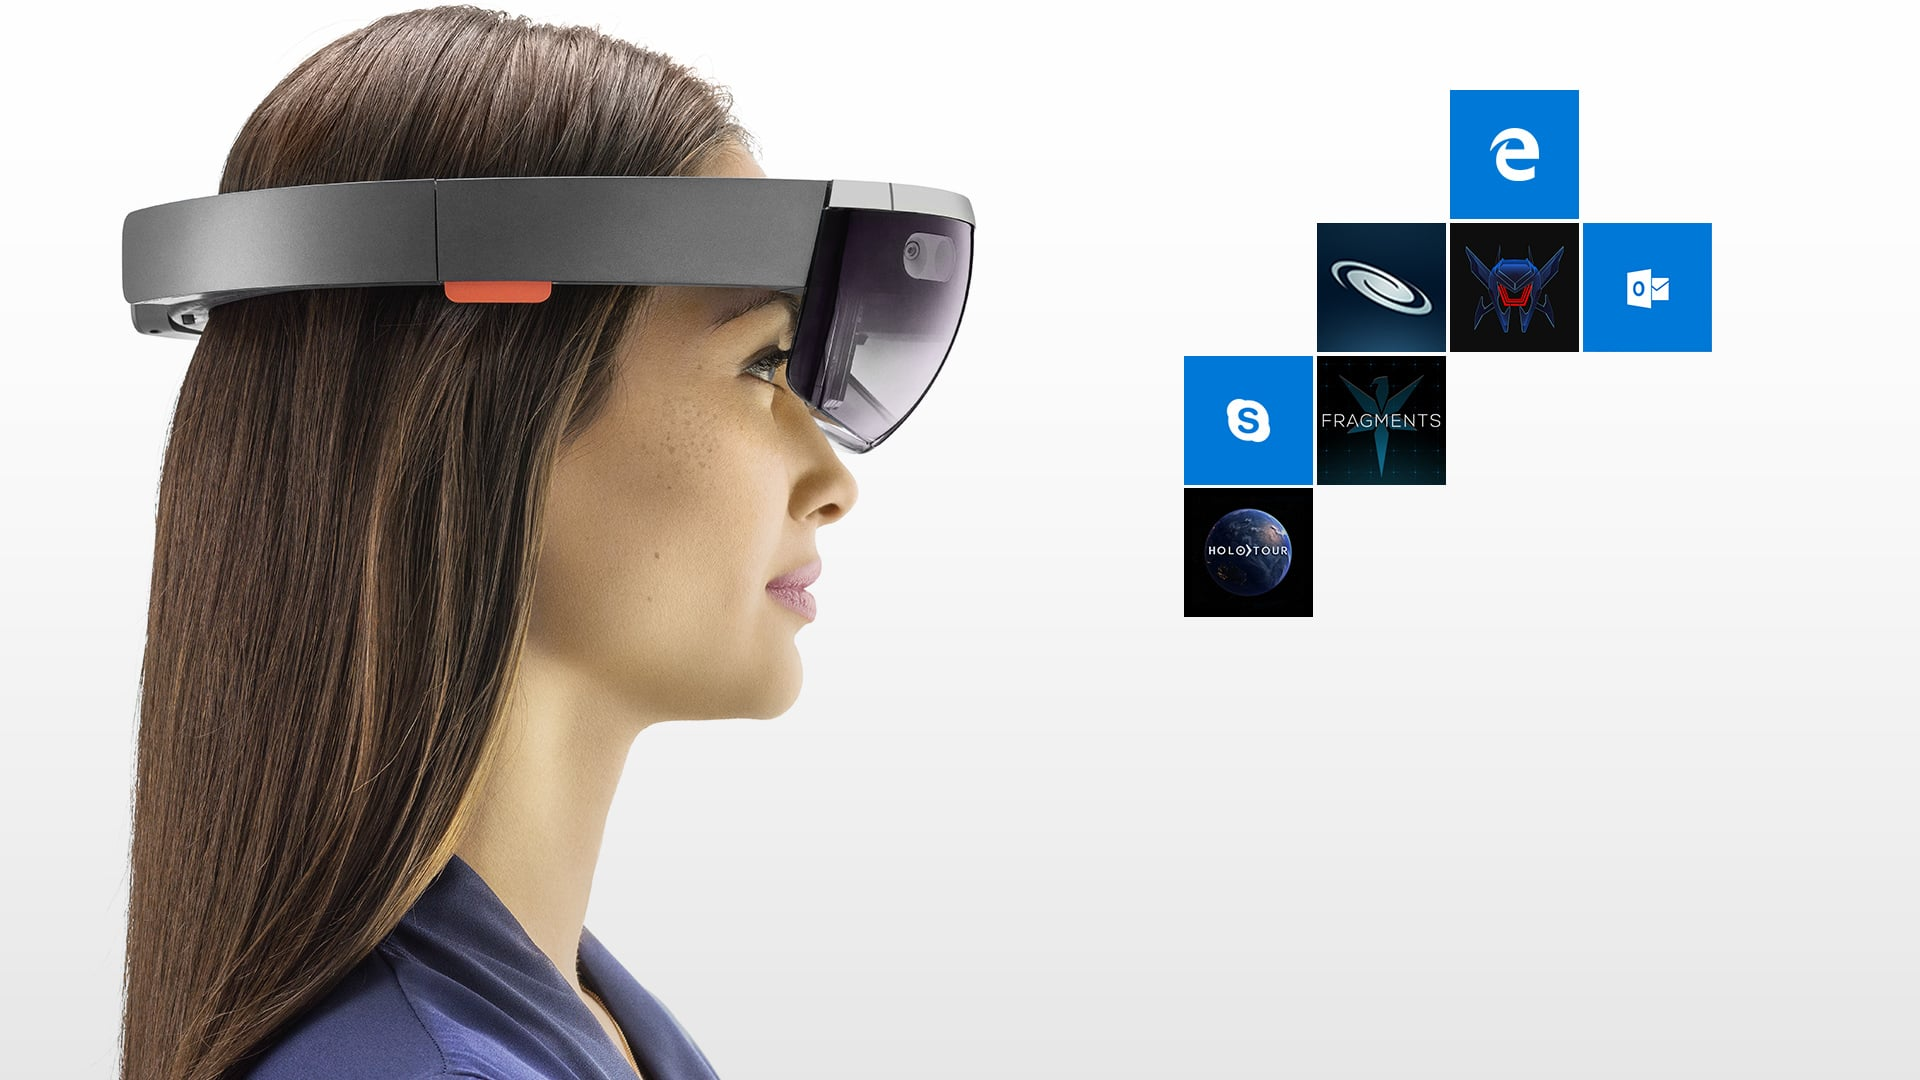 Profile of woman wearing HoloLens, looking at tiles of apps for HoloLens